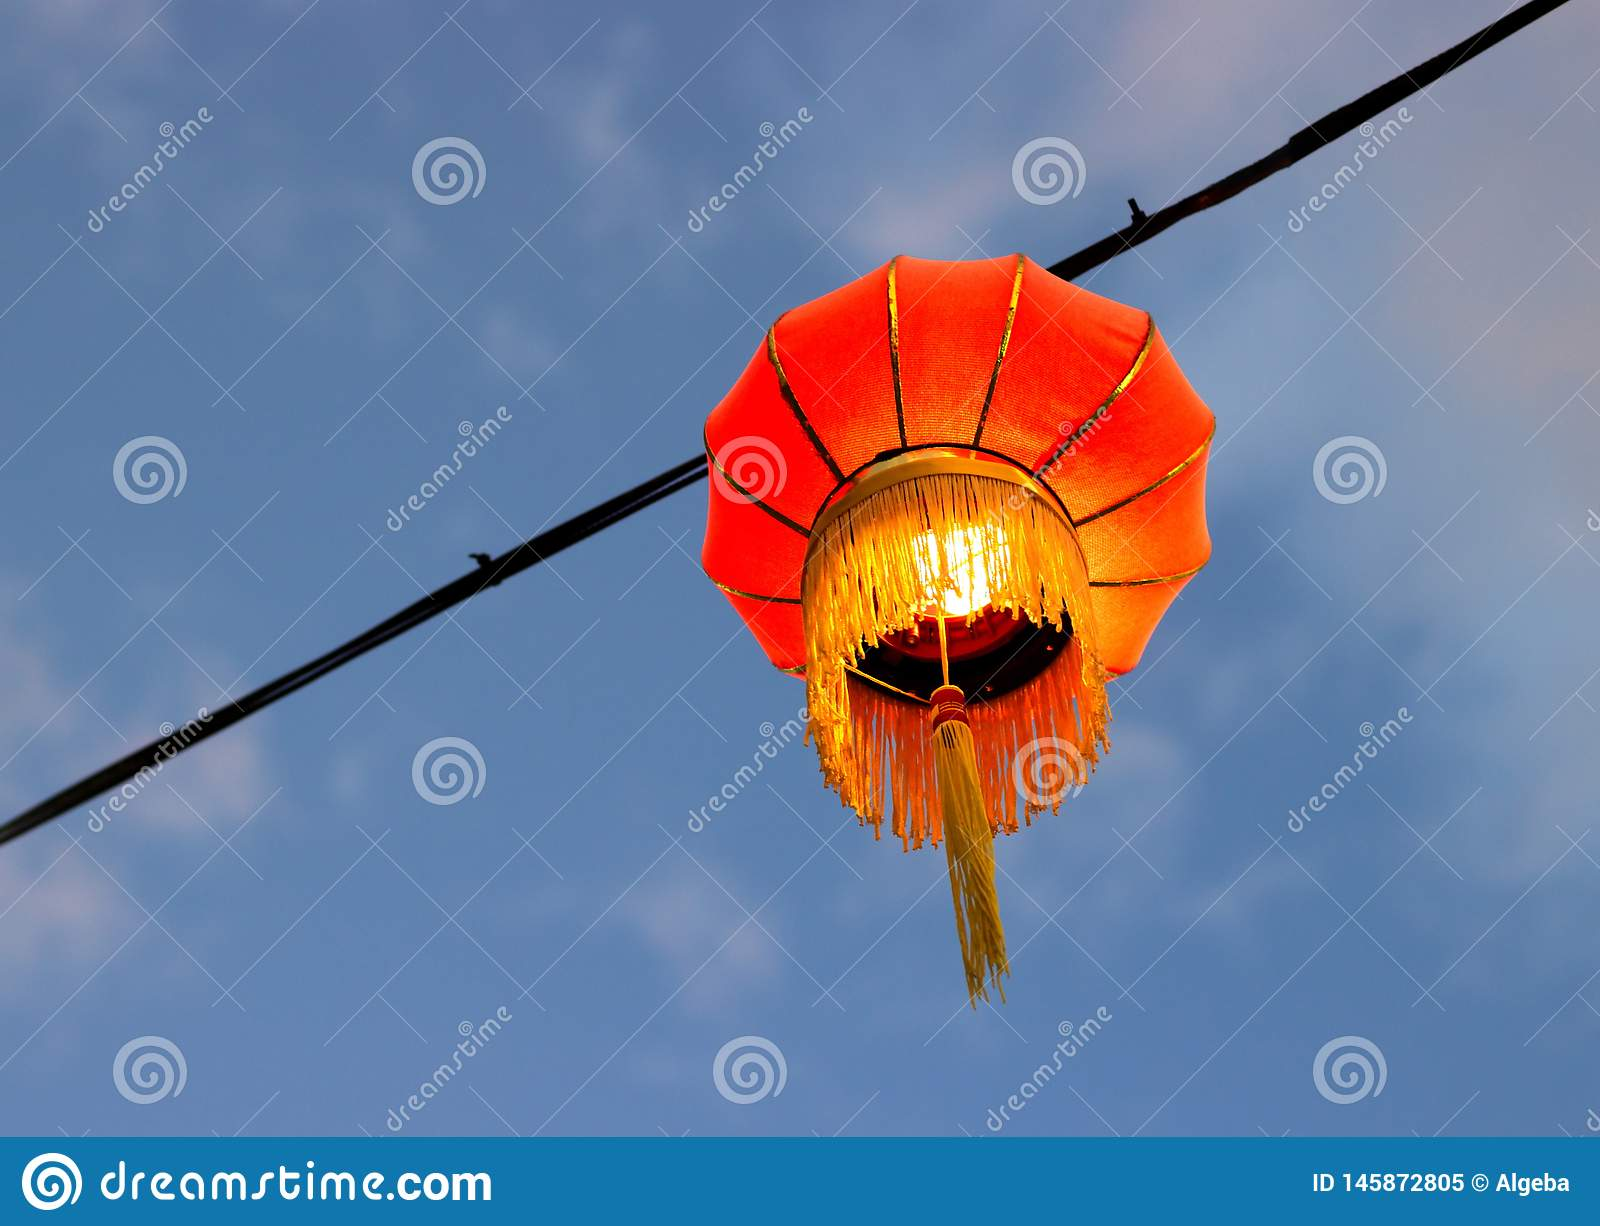 Red chinese paper lantern. Against the twilight sky background. Decorating the streets to celebrate the Chinese New Year royalty free stock photo